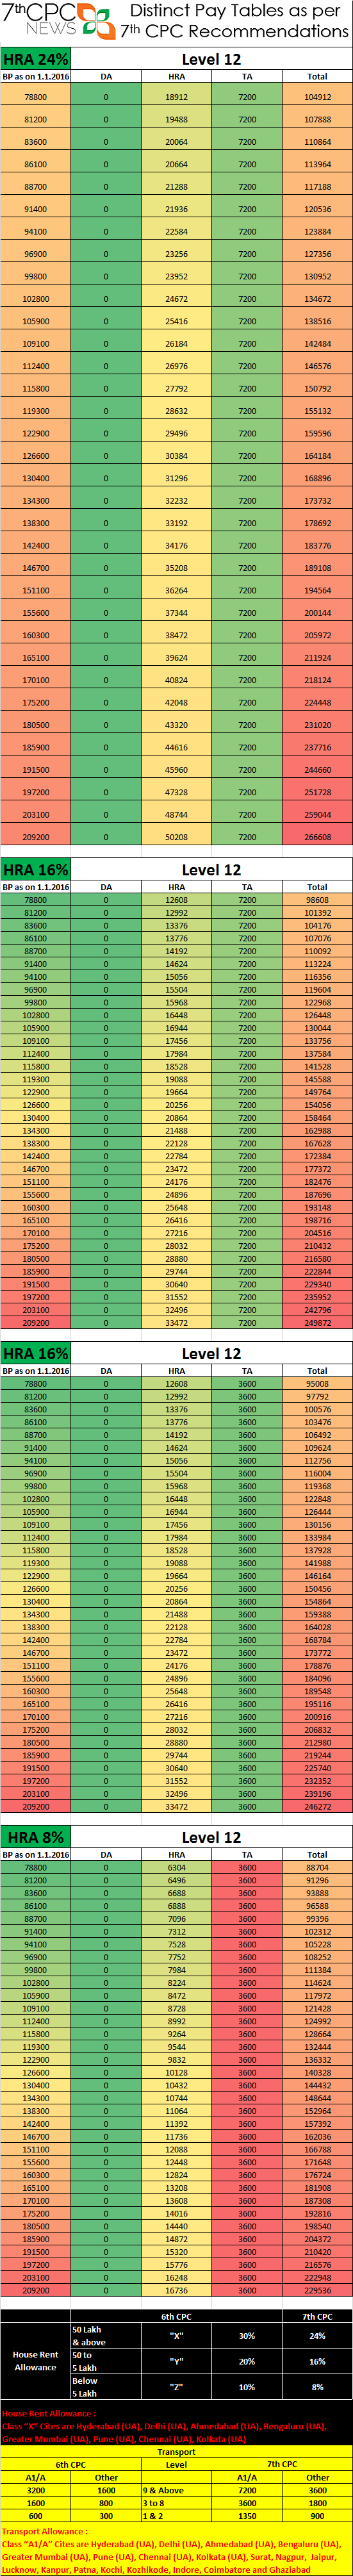 7th cpc pay tables level-12